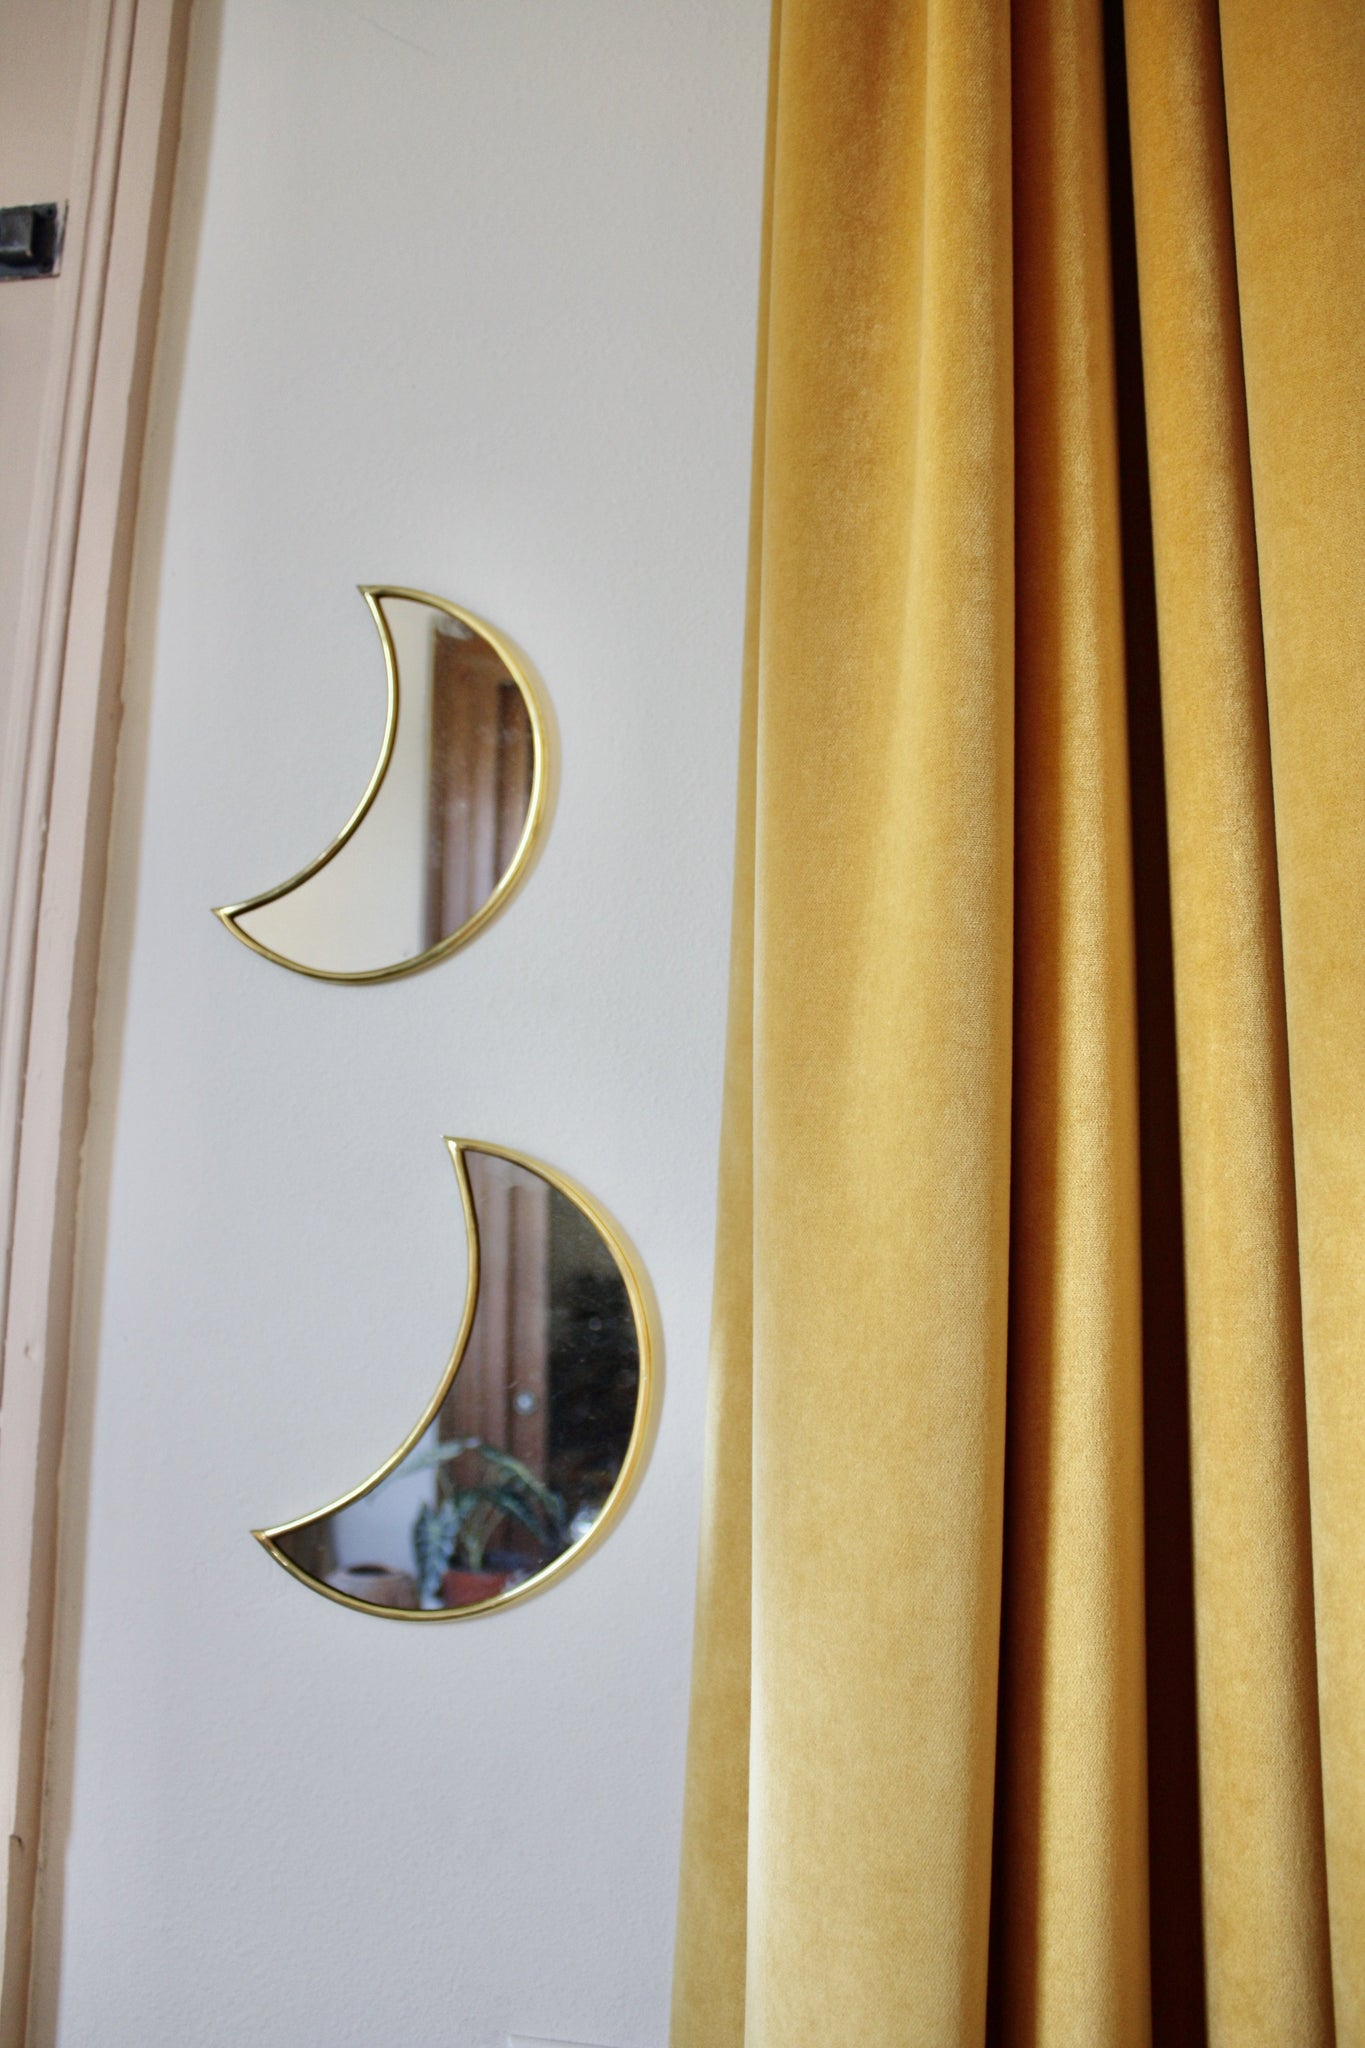 Set of 2 Small Crescent Moon Brass Mirrors Handmade in Morocco